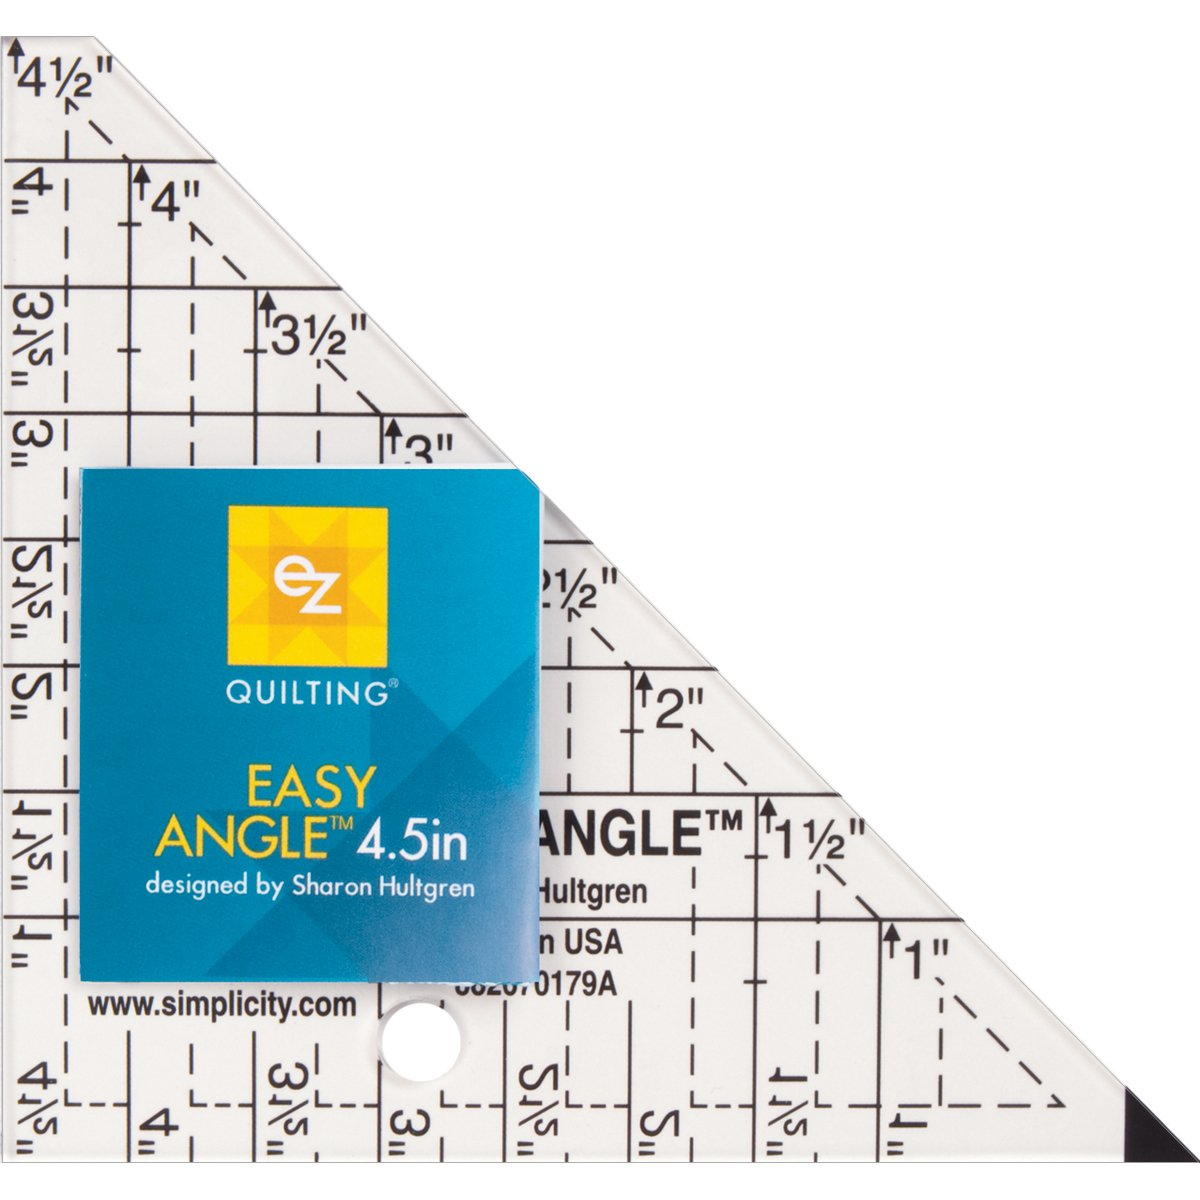 EZ Quilting 4.5-inch Easy Angle Acrylic Template Simplicity 670179